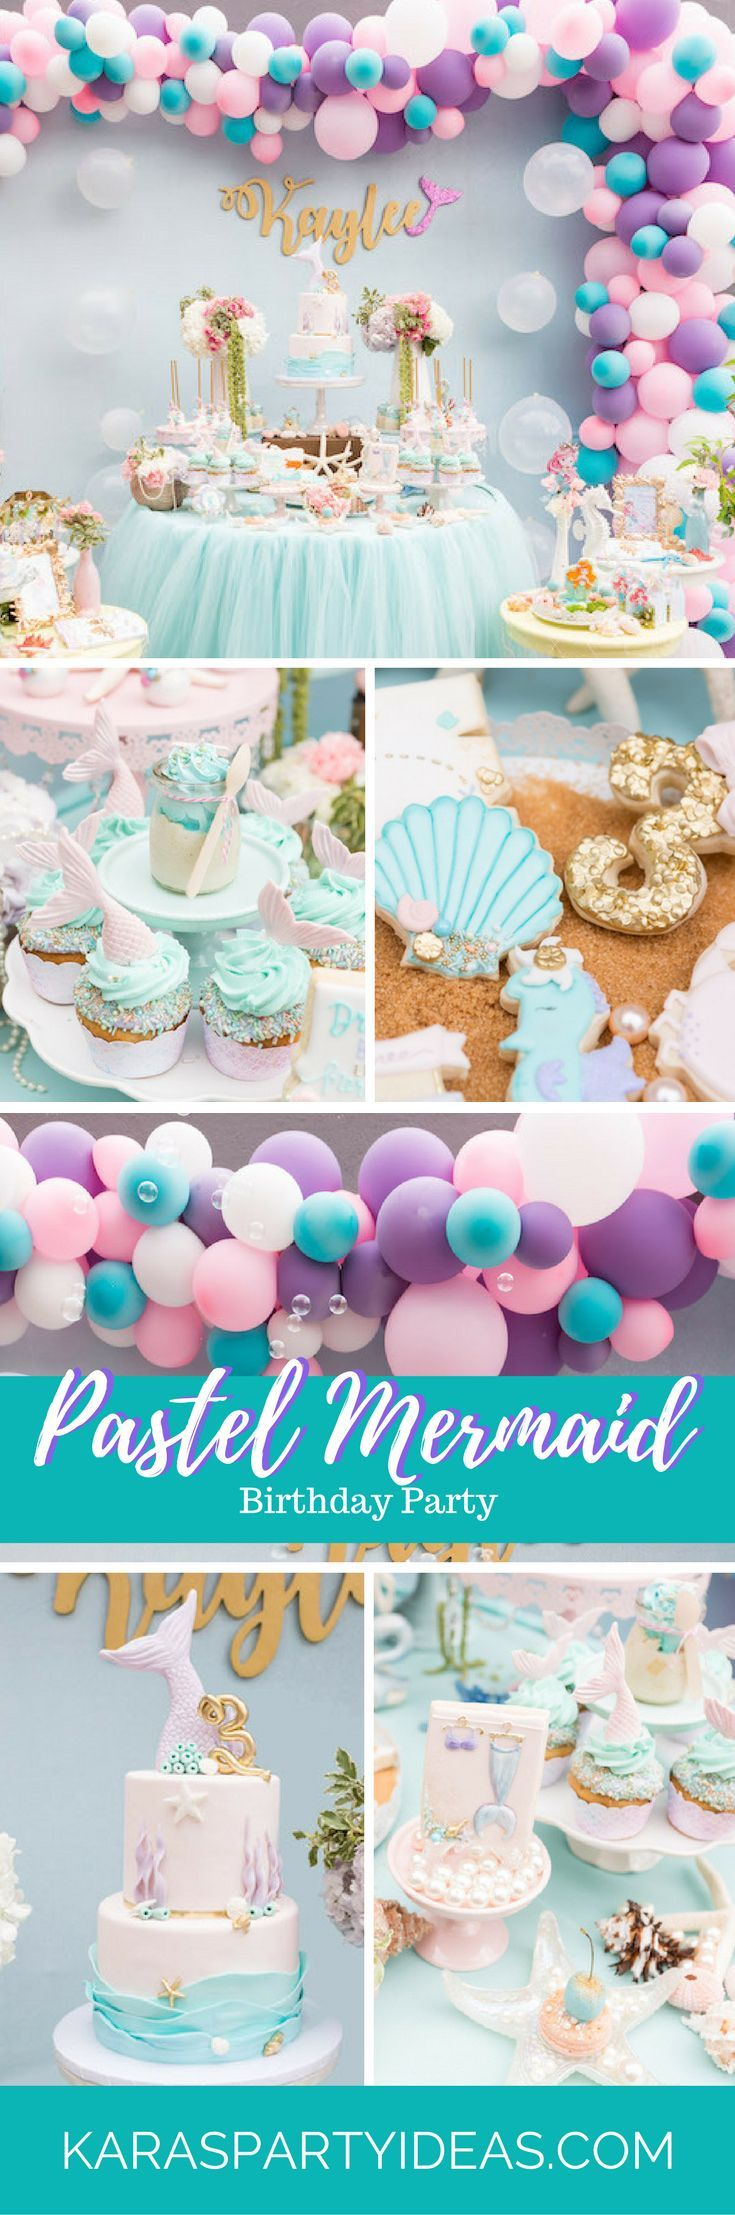 From kara s party ideas rustic dessert table display designed by - Pastel Mermaid Birthday Party Via Kara S Party Ideas Karaspartyideas Com Mermaidparty Mermaidpartyideas